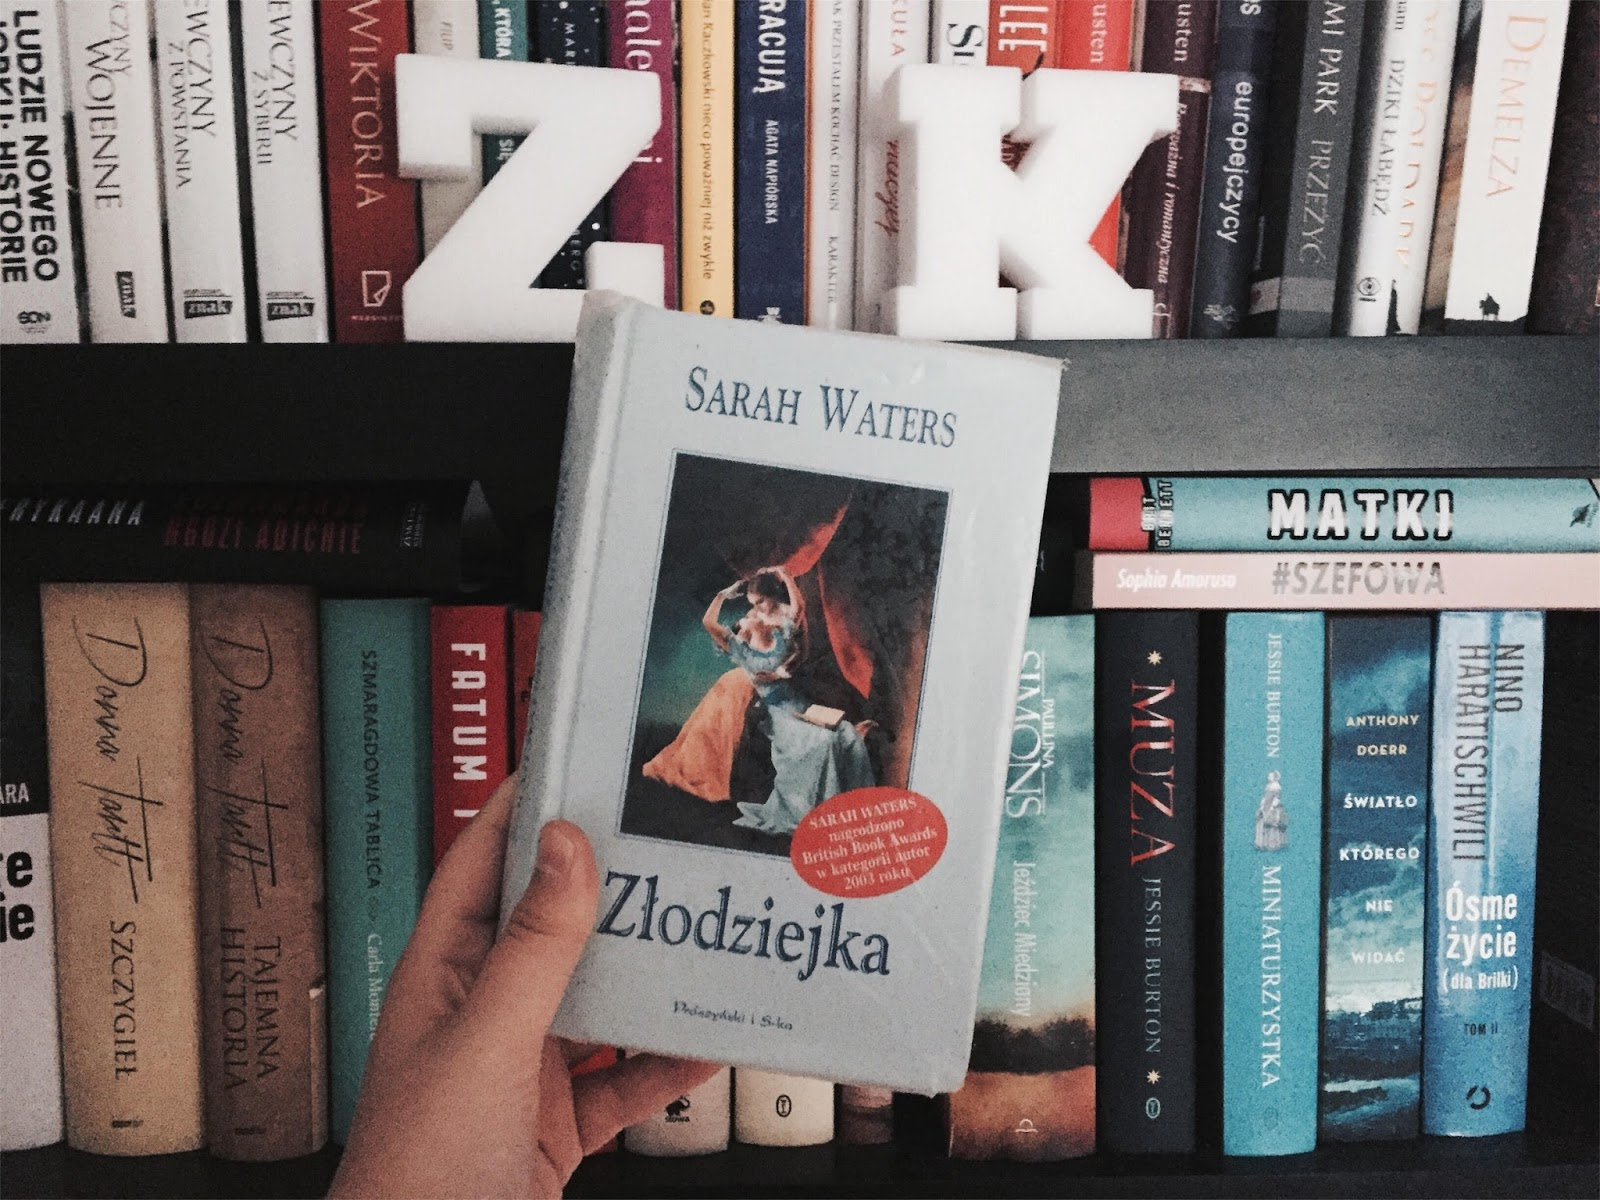 Złodziejka, Sarah Waters